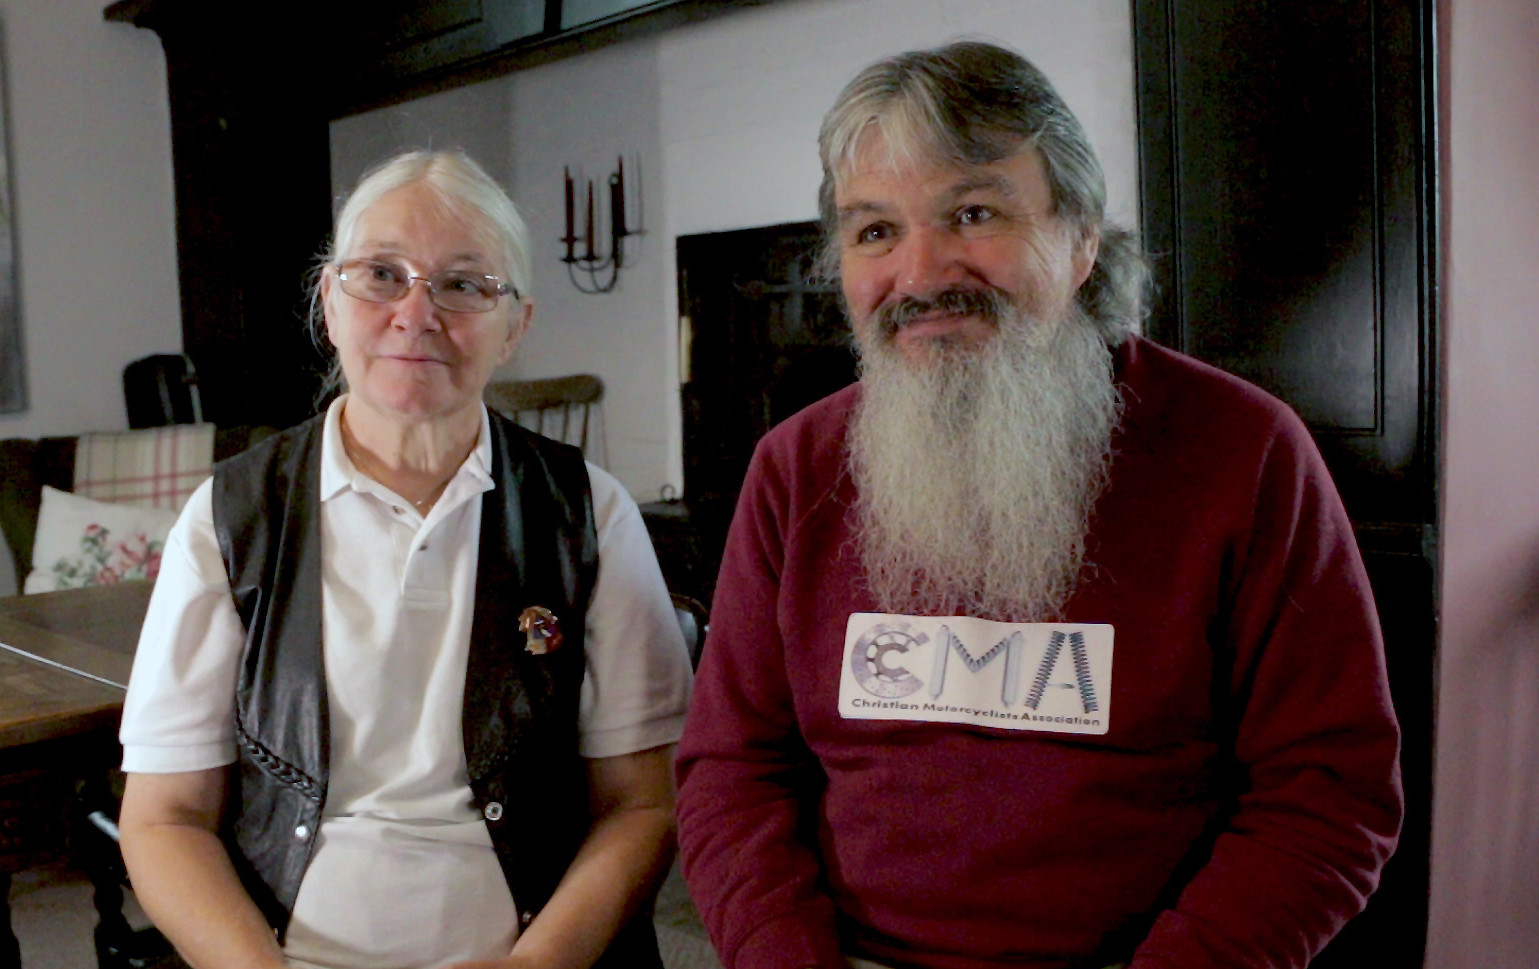 The Pilgrim: Frances and Fred's Story